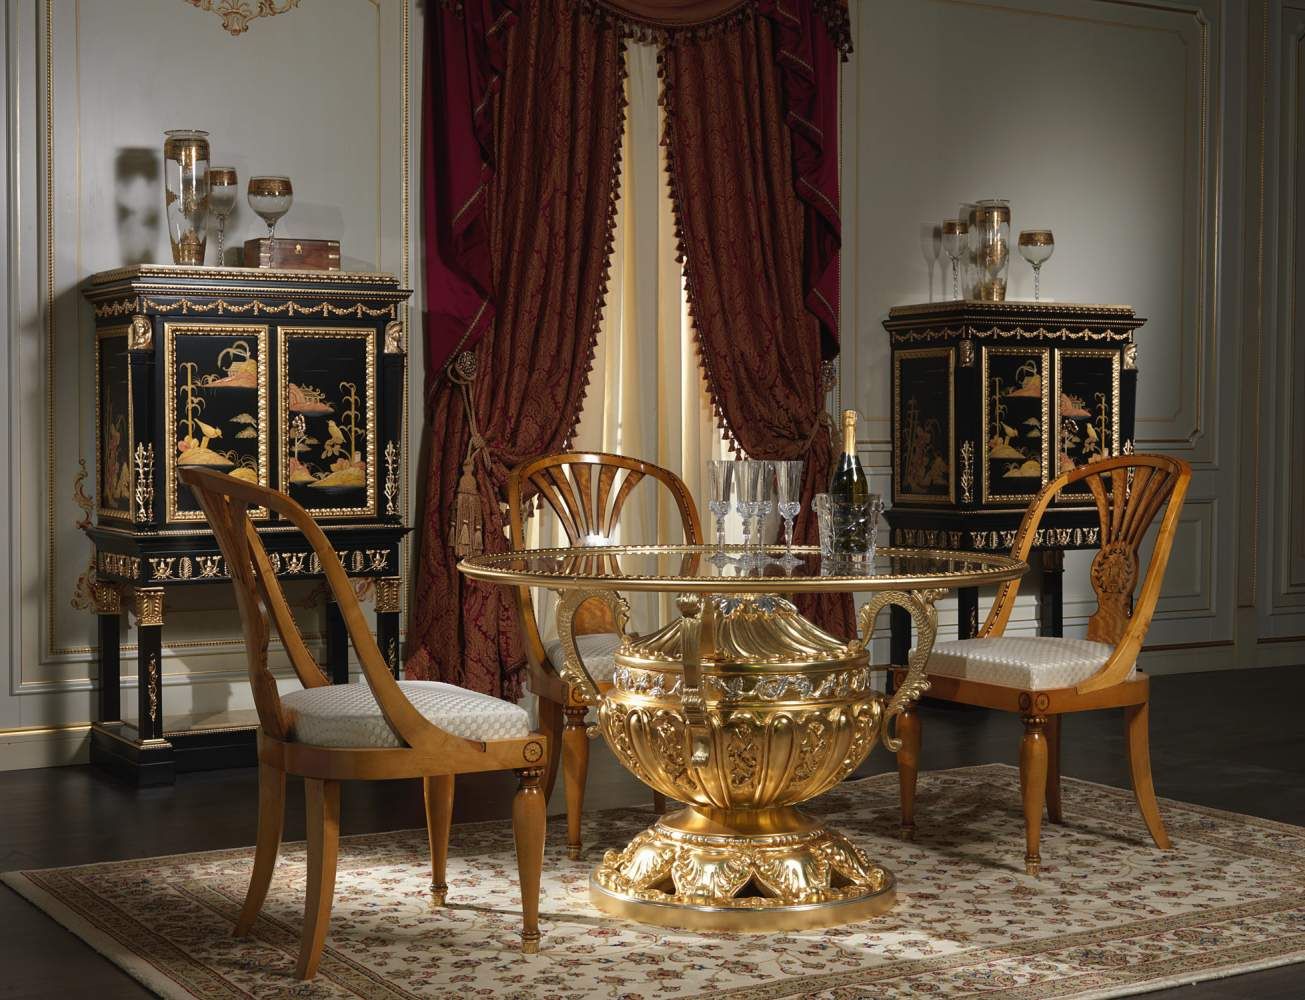 Classic dining room made in Italy